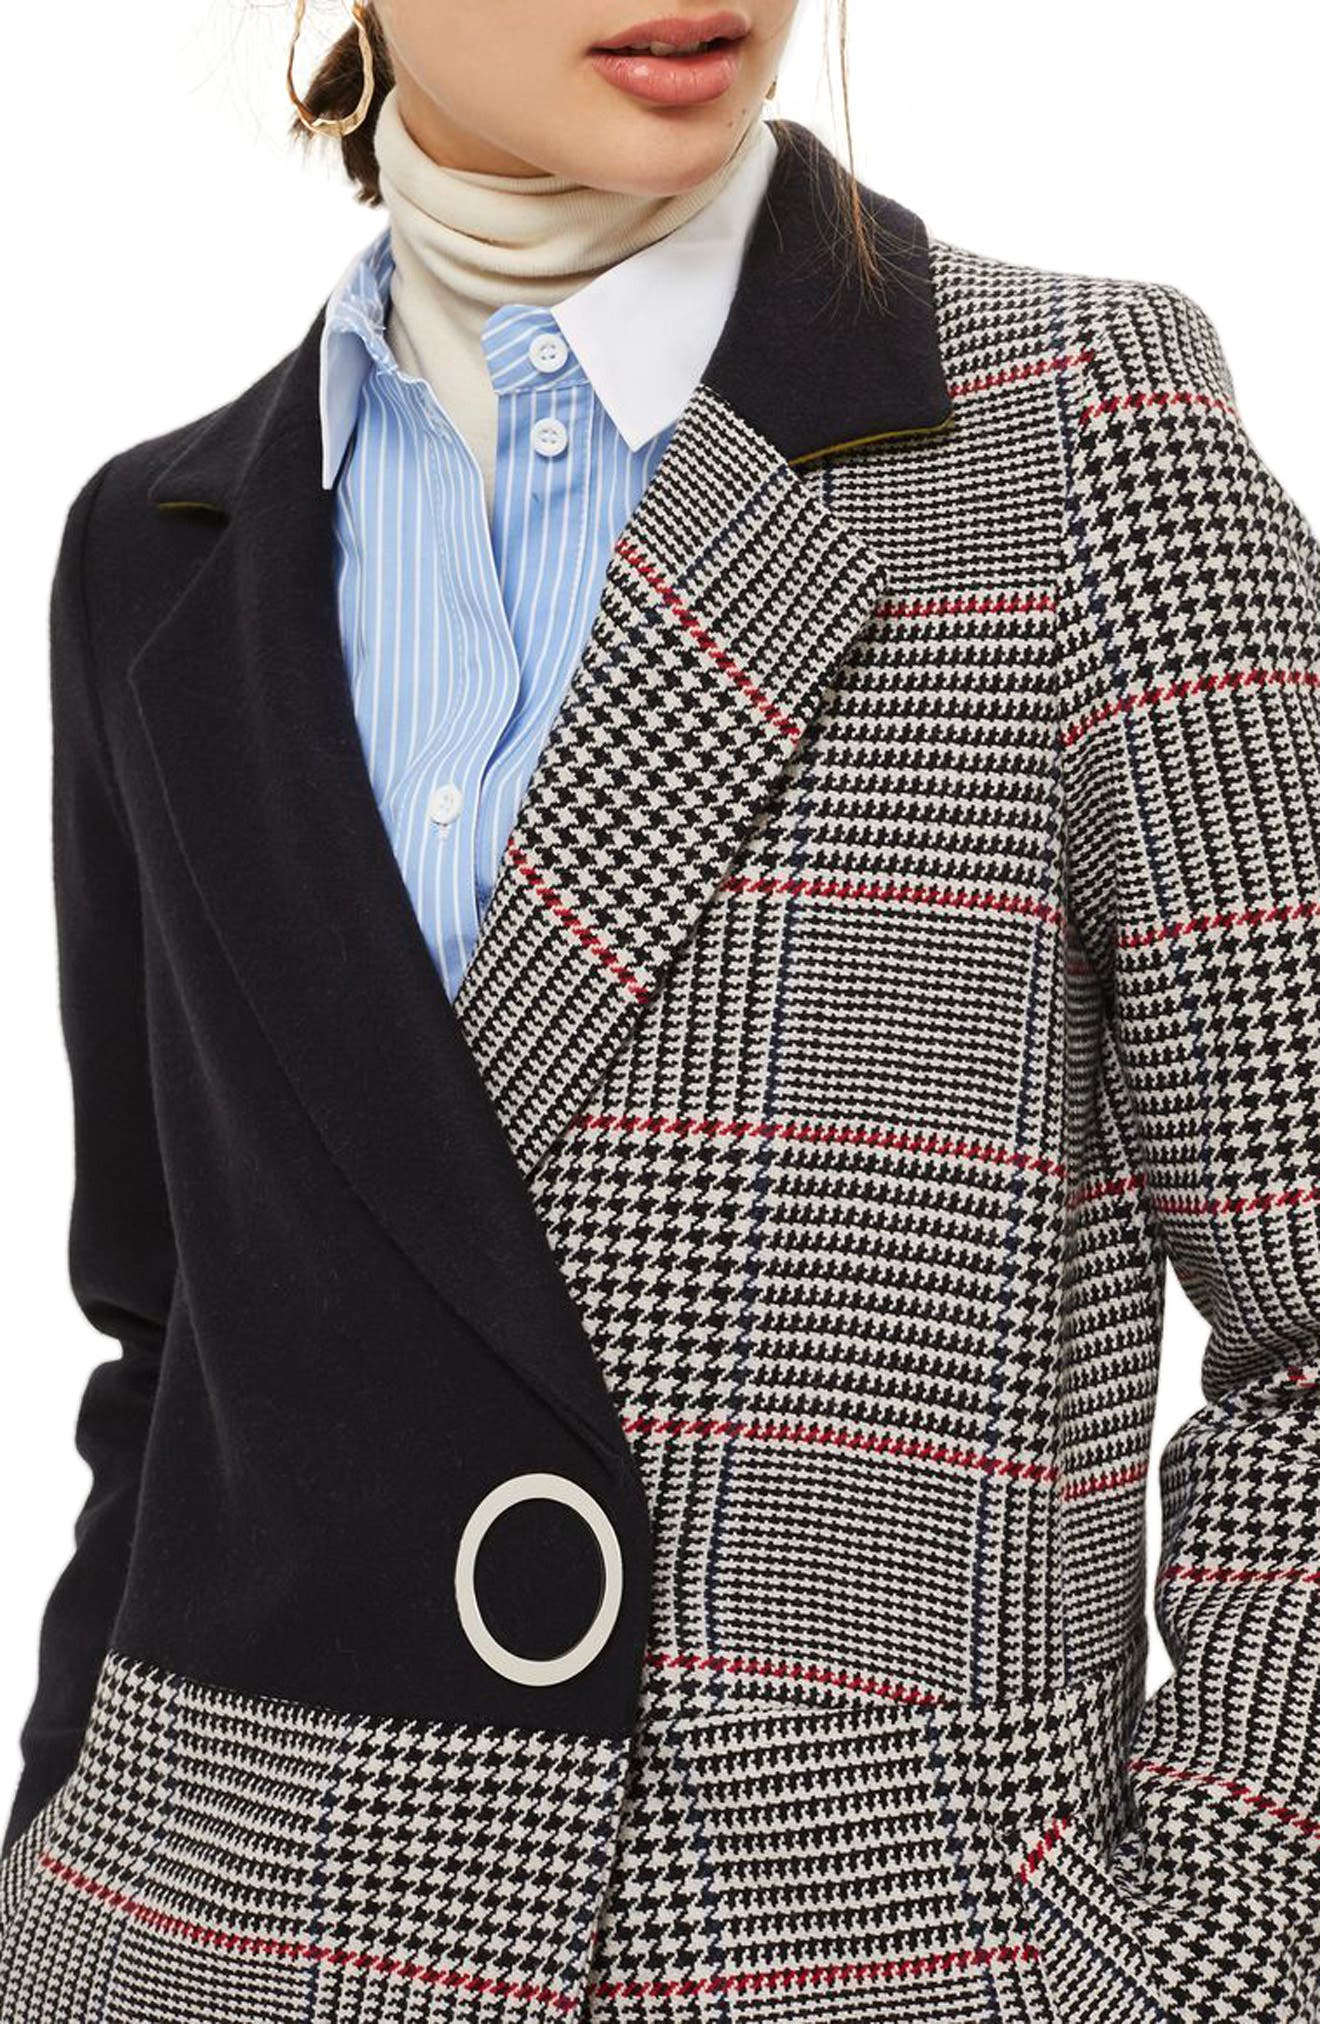 Colorblock Check Wool Blend Coat,                             Main thumbnail 1, color,                             410